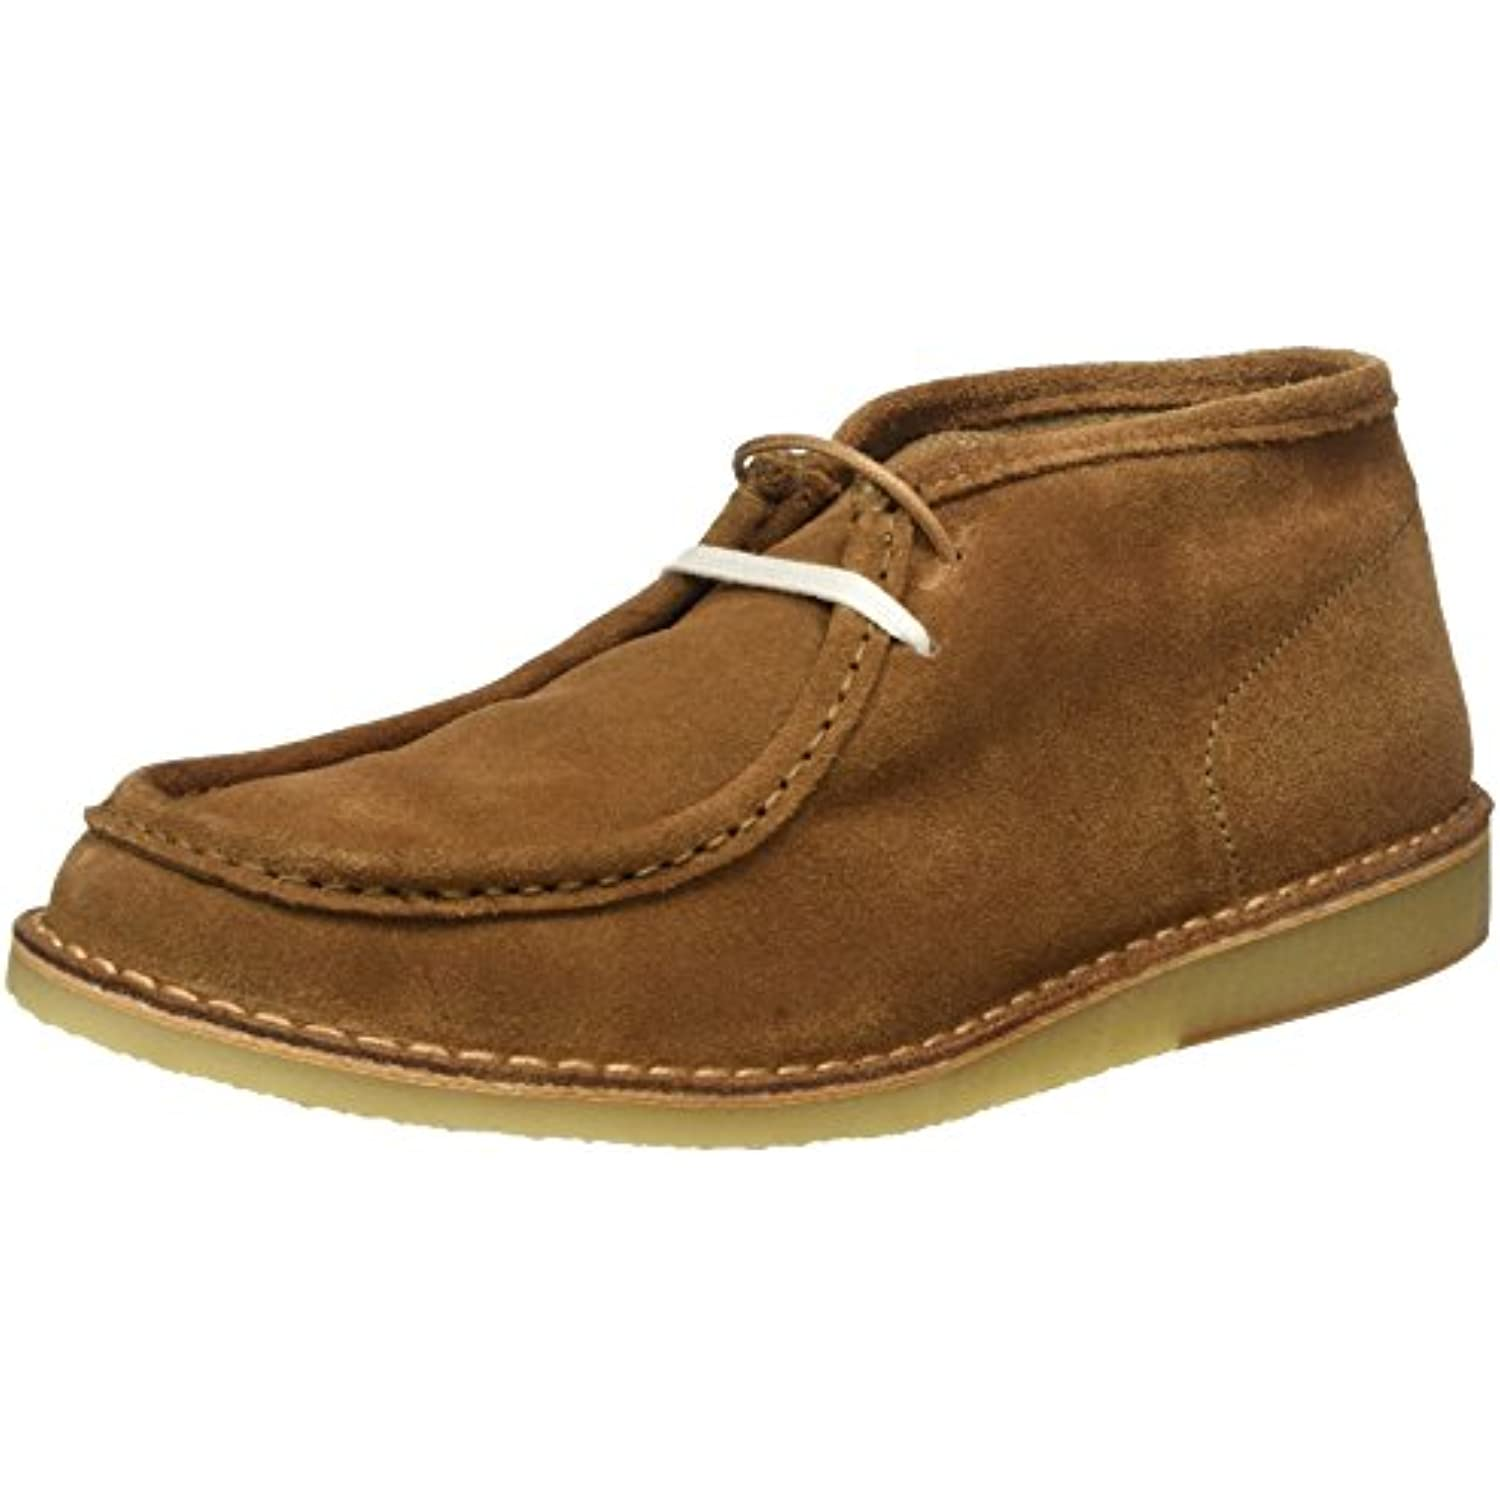 Selected Selected Selected Shhronni Light, Desert Boots Homme - B01MTO8NPH - cfb71c